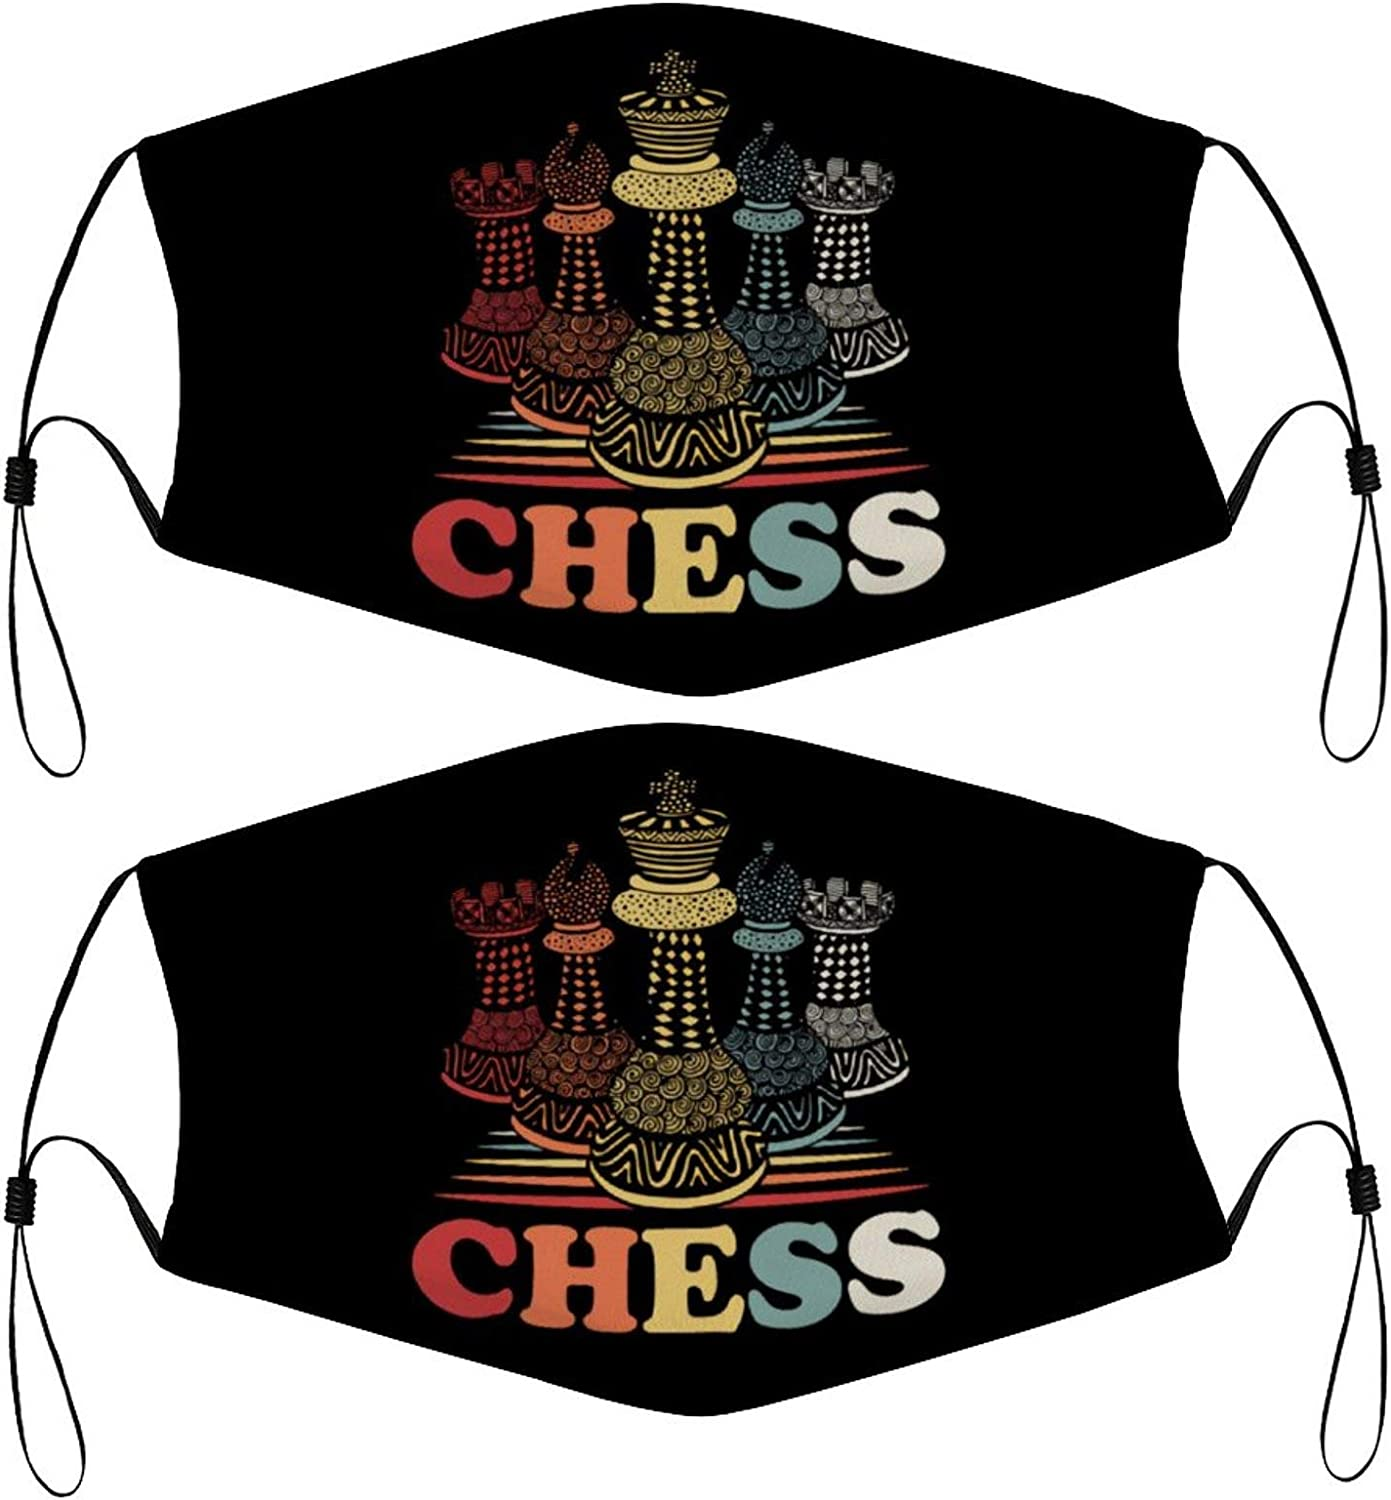 Chess Vintage Retro Kids Face Mask Set of 2 with 4 Filters Washable Reusable Adjustable Black Cloth Bandanas Scarf Neck Gaiters for Adult Men Women Fashion Designs